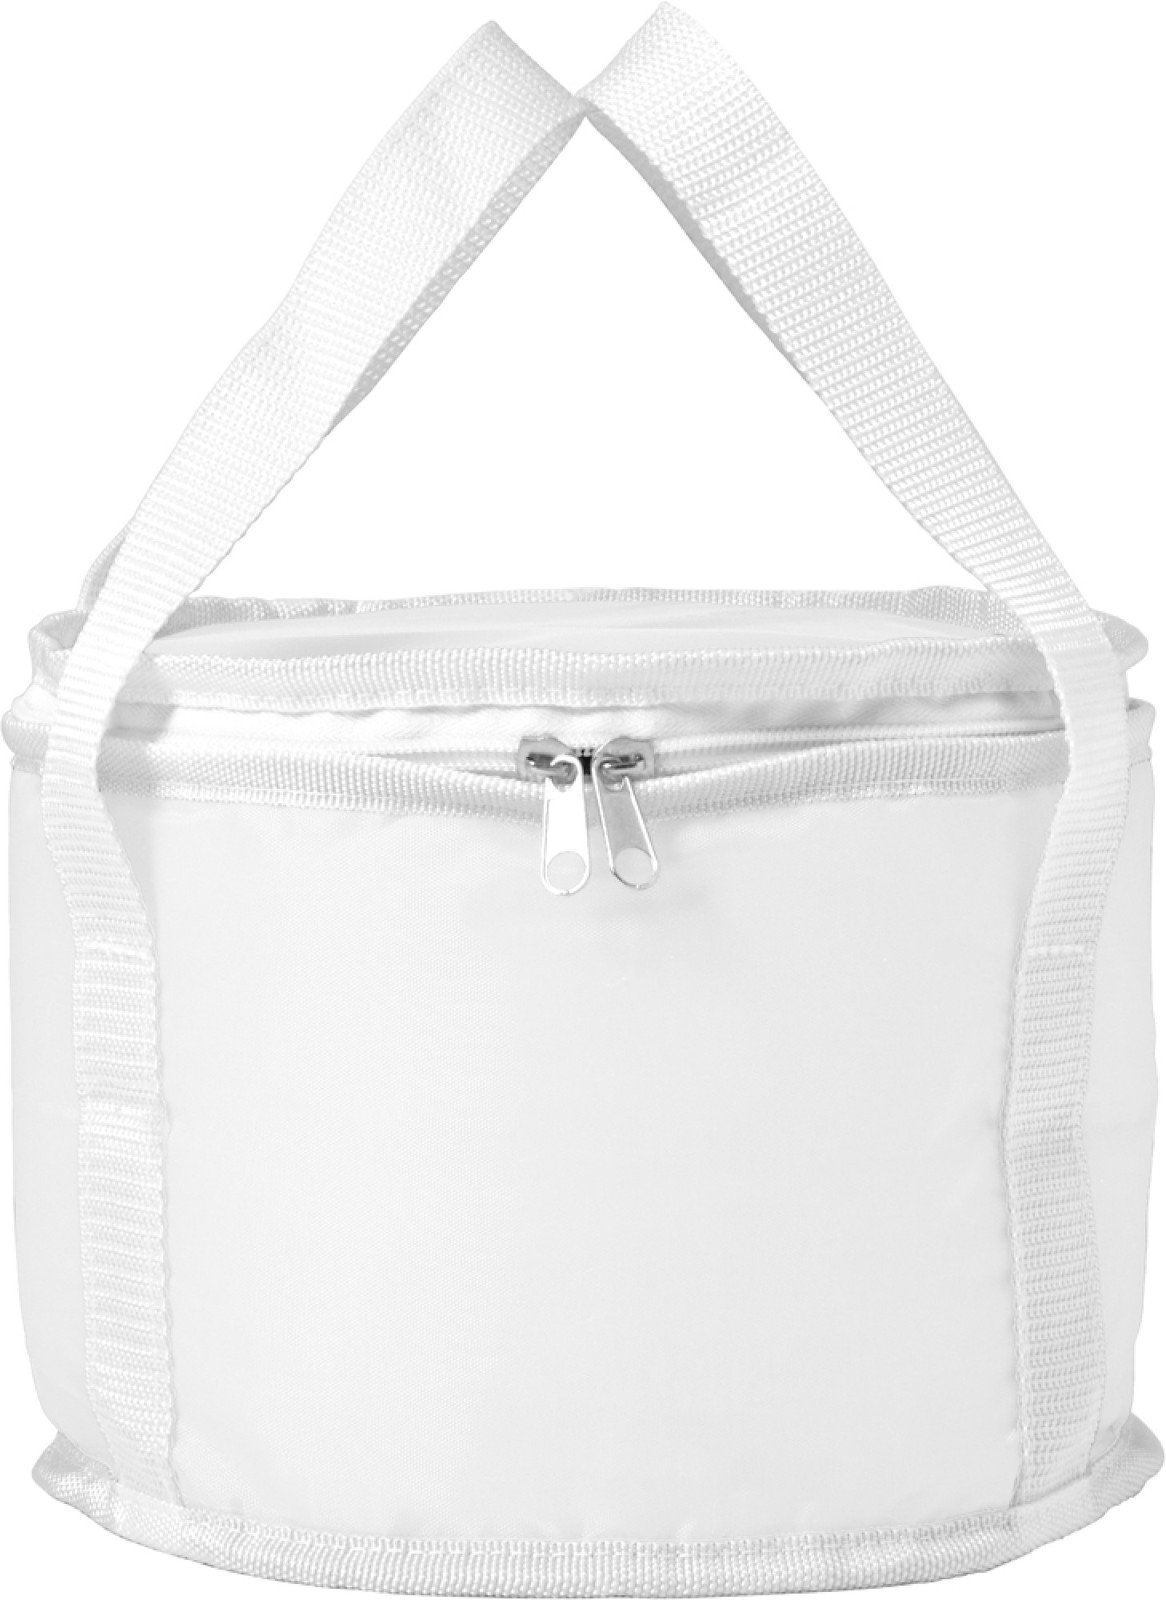 Polyester (210D) round cooler bag - White